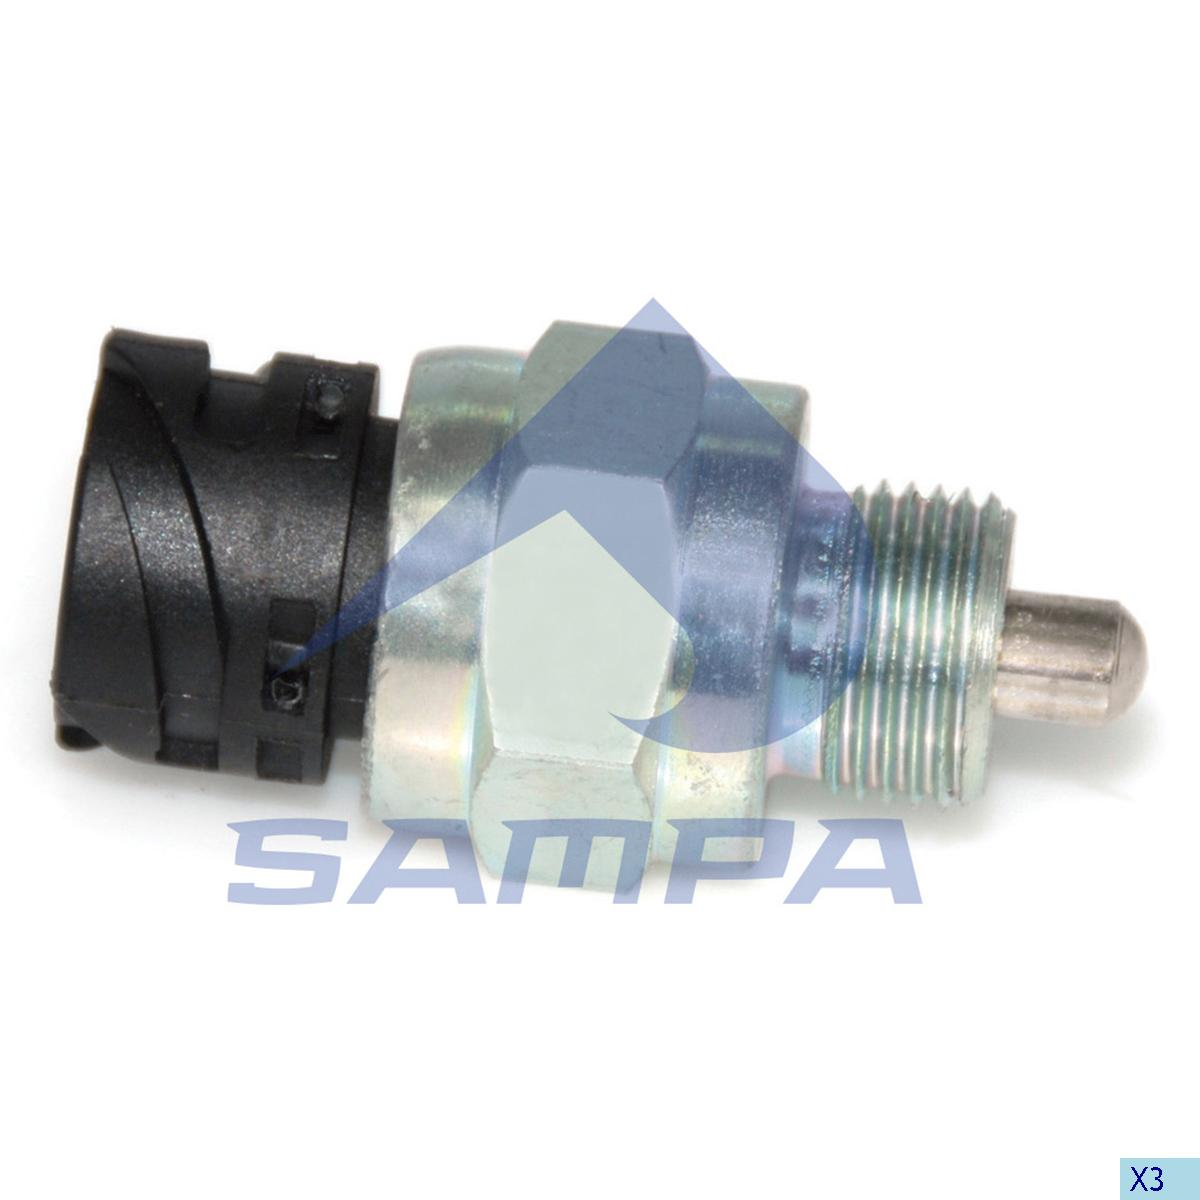 Sensor, Gear Selector Housing, Daf, Gear Box